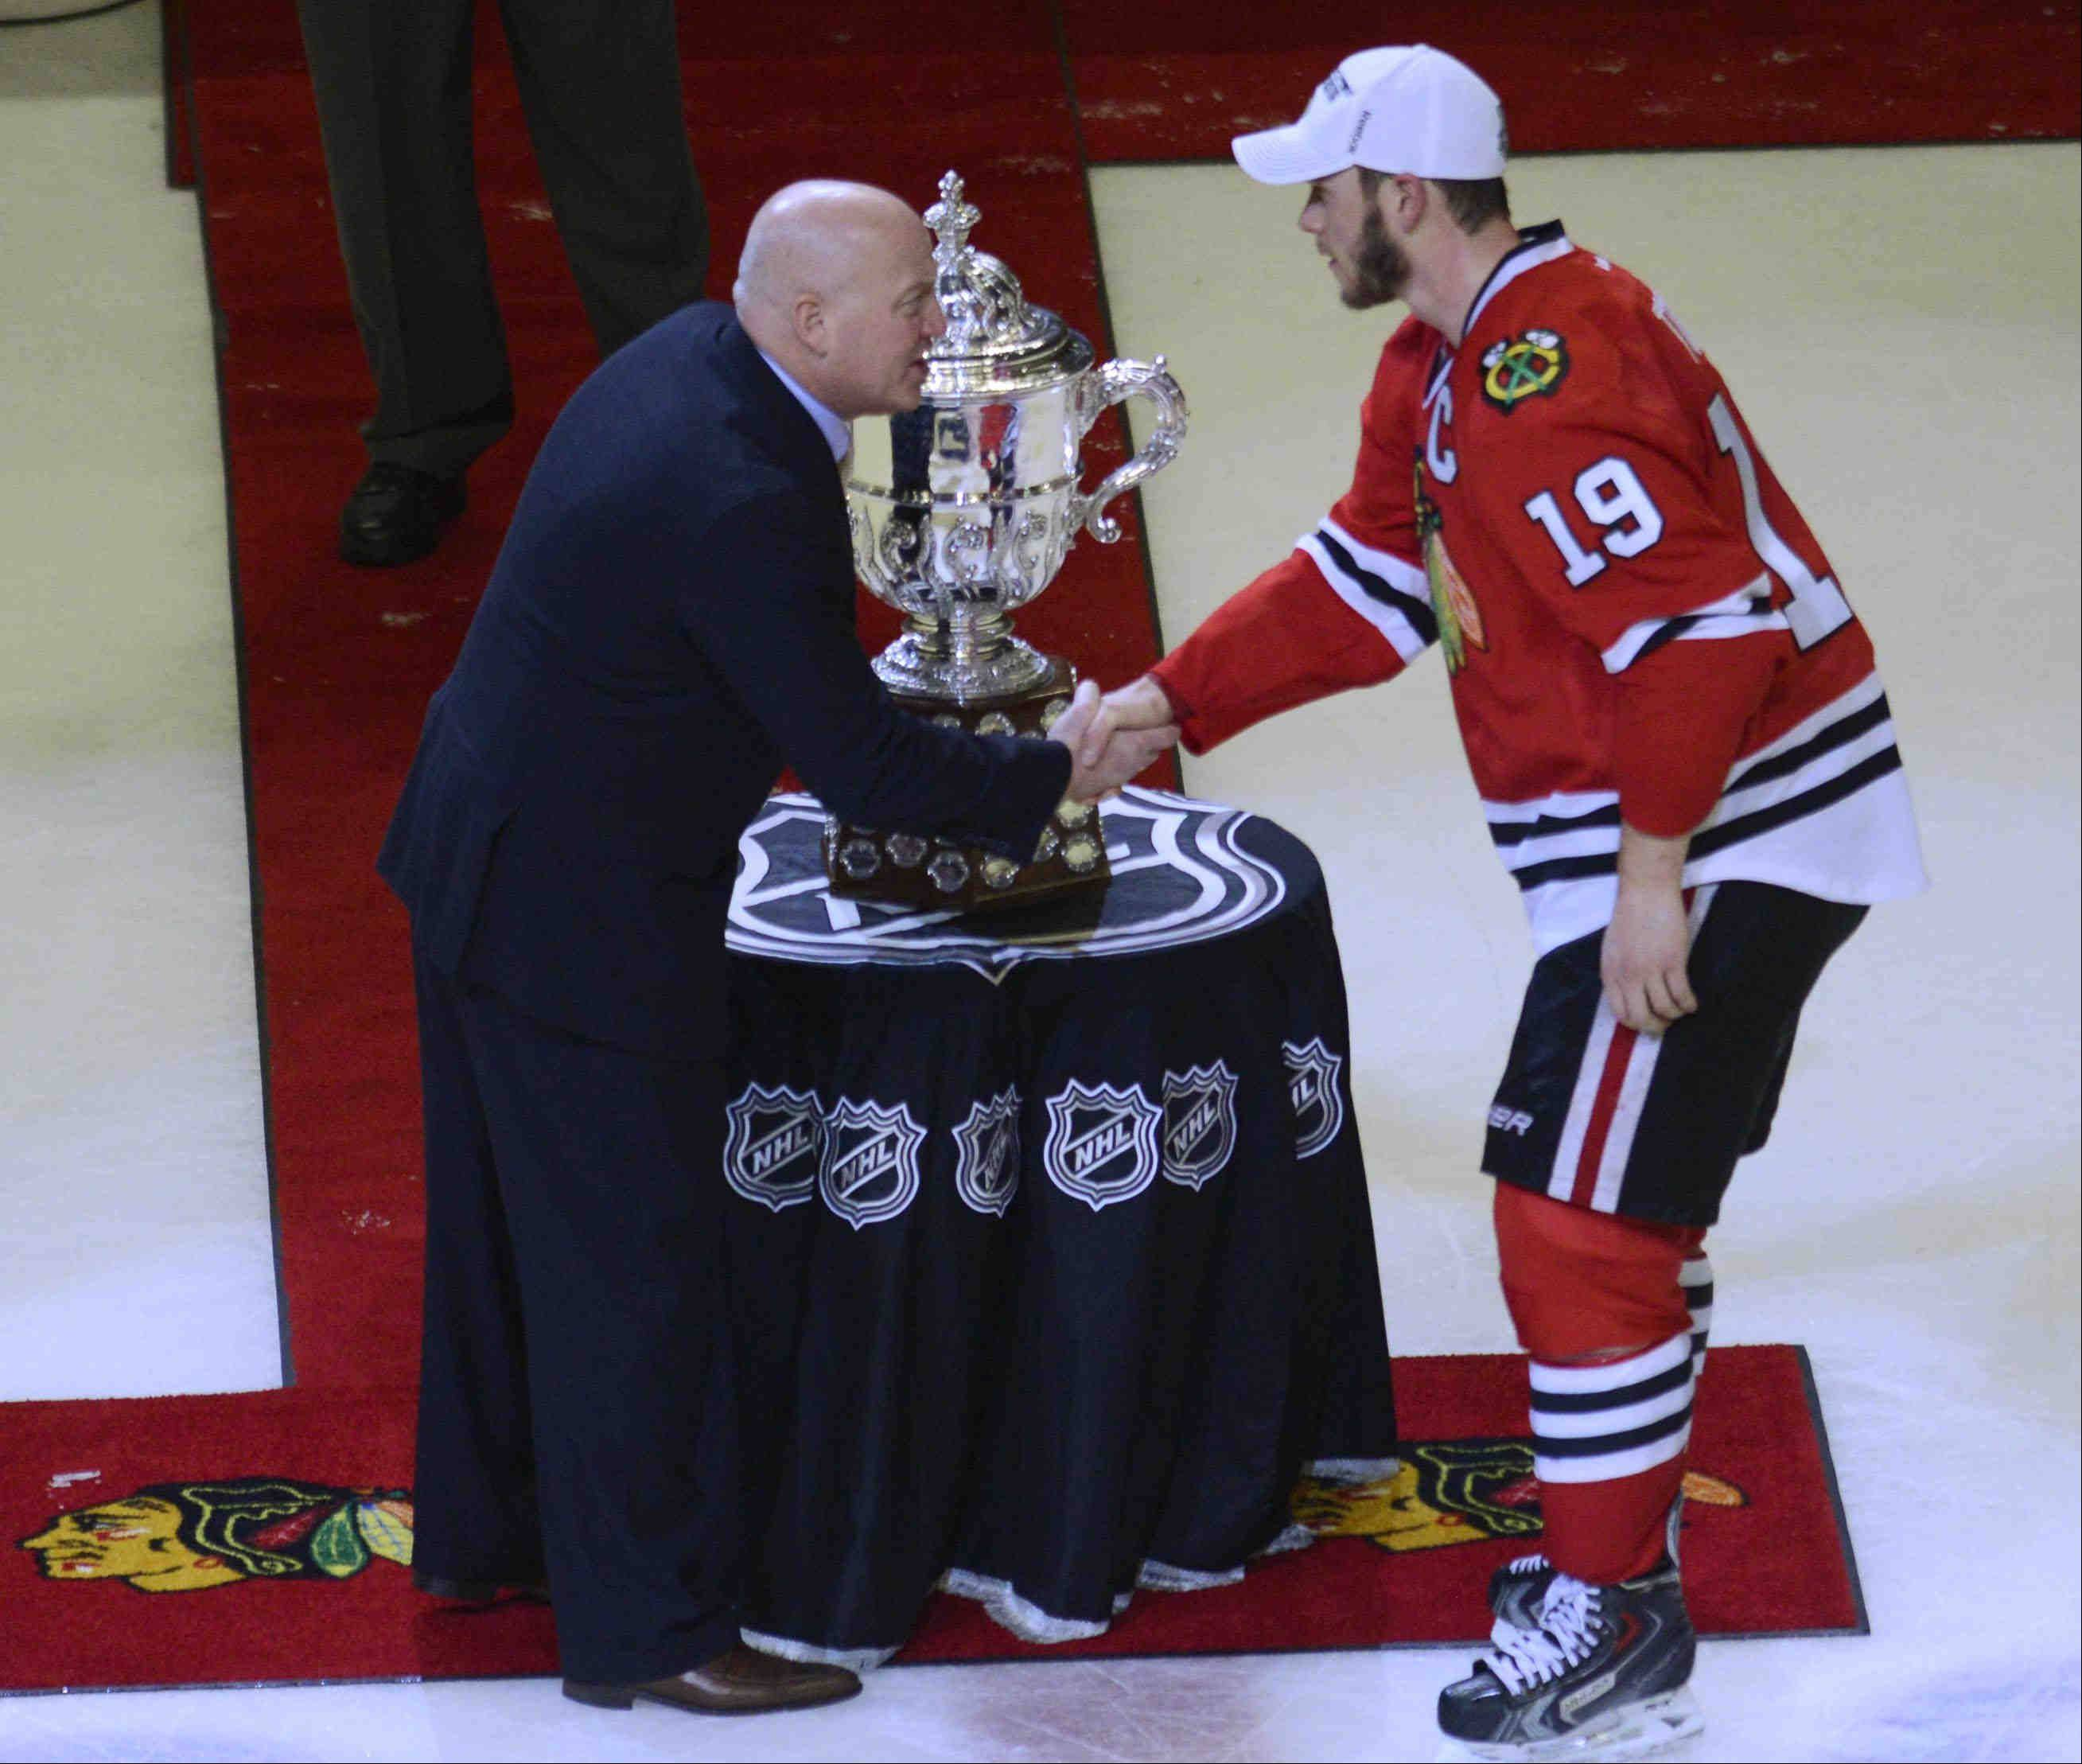 Chicago Blackhawks captain Jonathan Toews accepts, but doesn't touch, the Campbell Cup after defeating the Los Angeles Kings Saturday for the NHL Western Conference Championship at the United Center in Chicago.